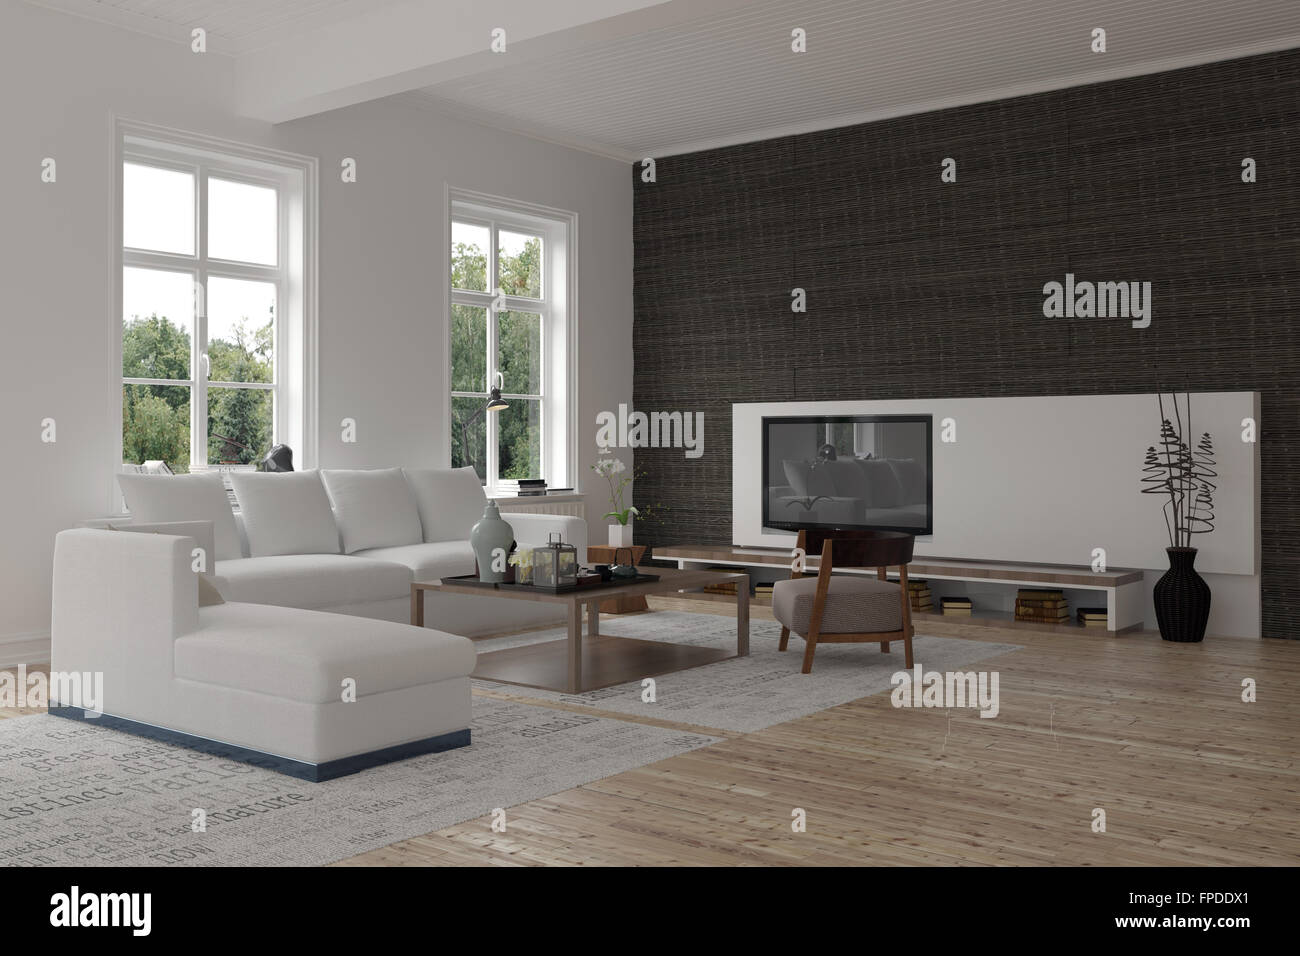 Spacious Modern Living Room Interior With A Black Accent Wall Stock Photo Alamy